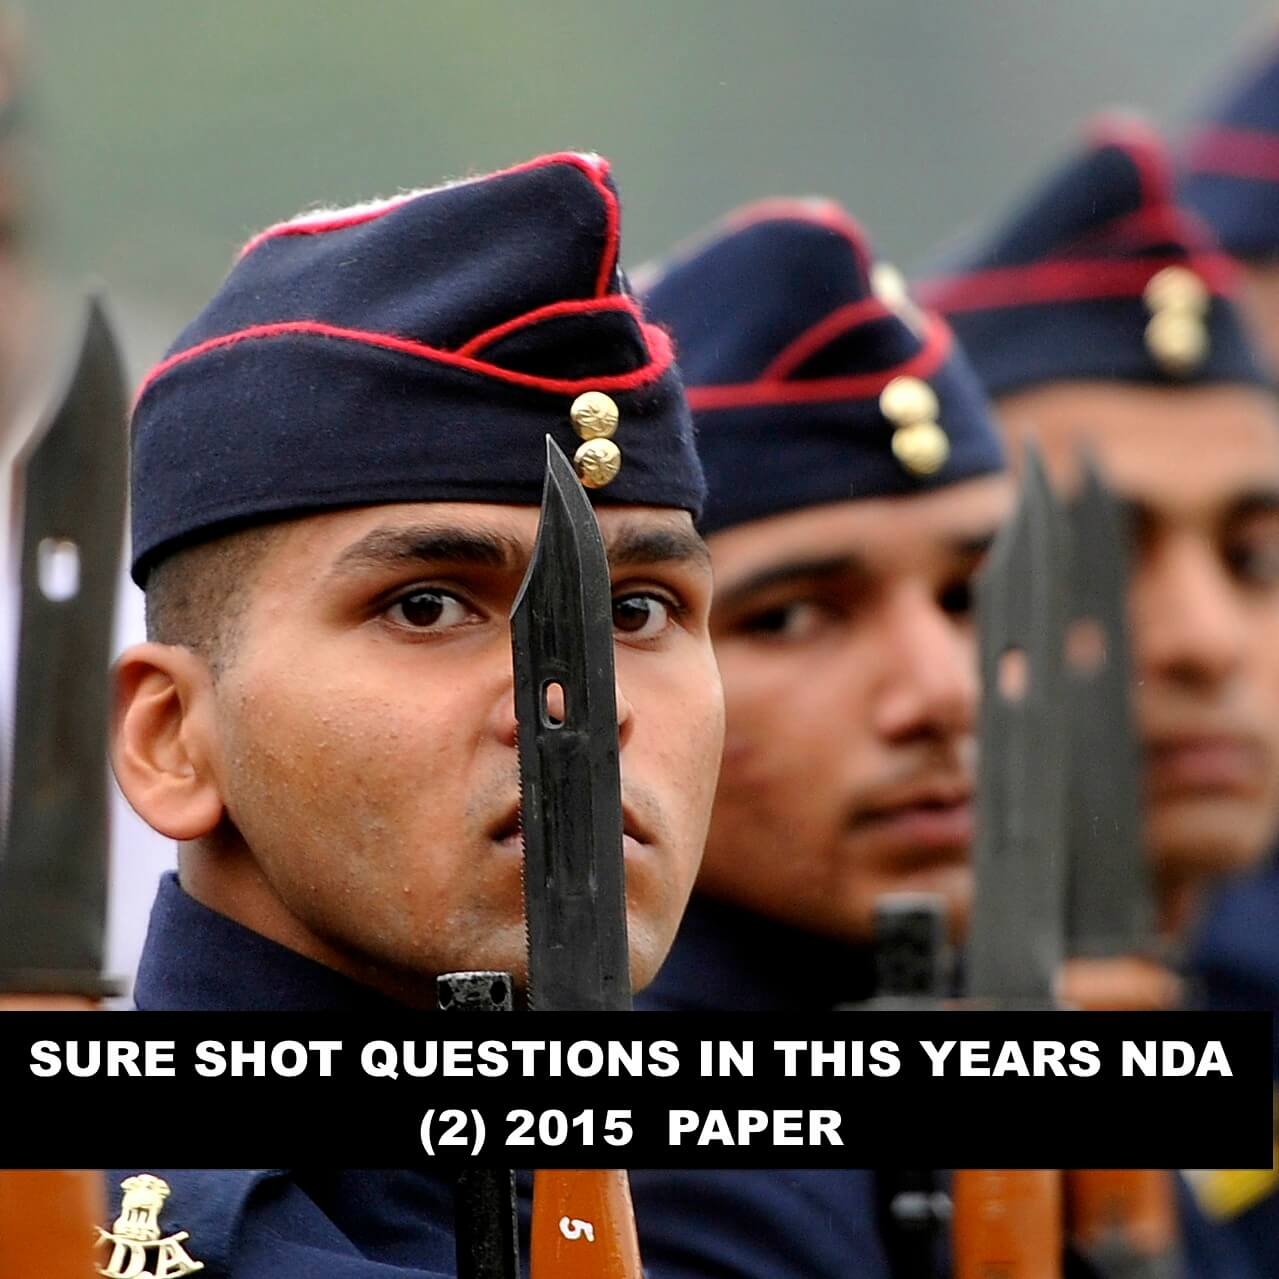 nda confirmed paper (2) 2015